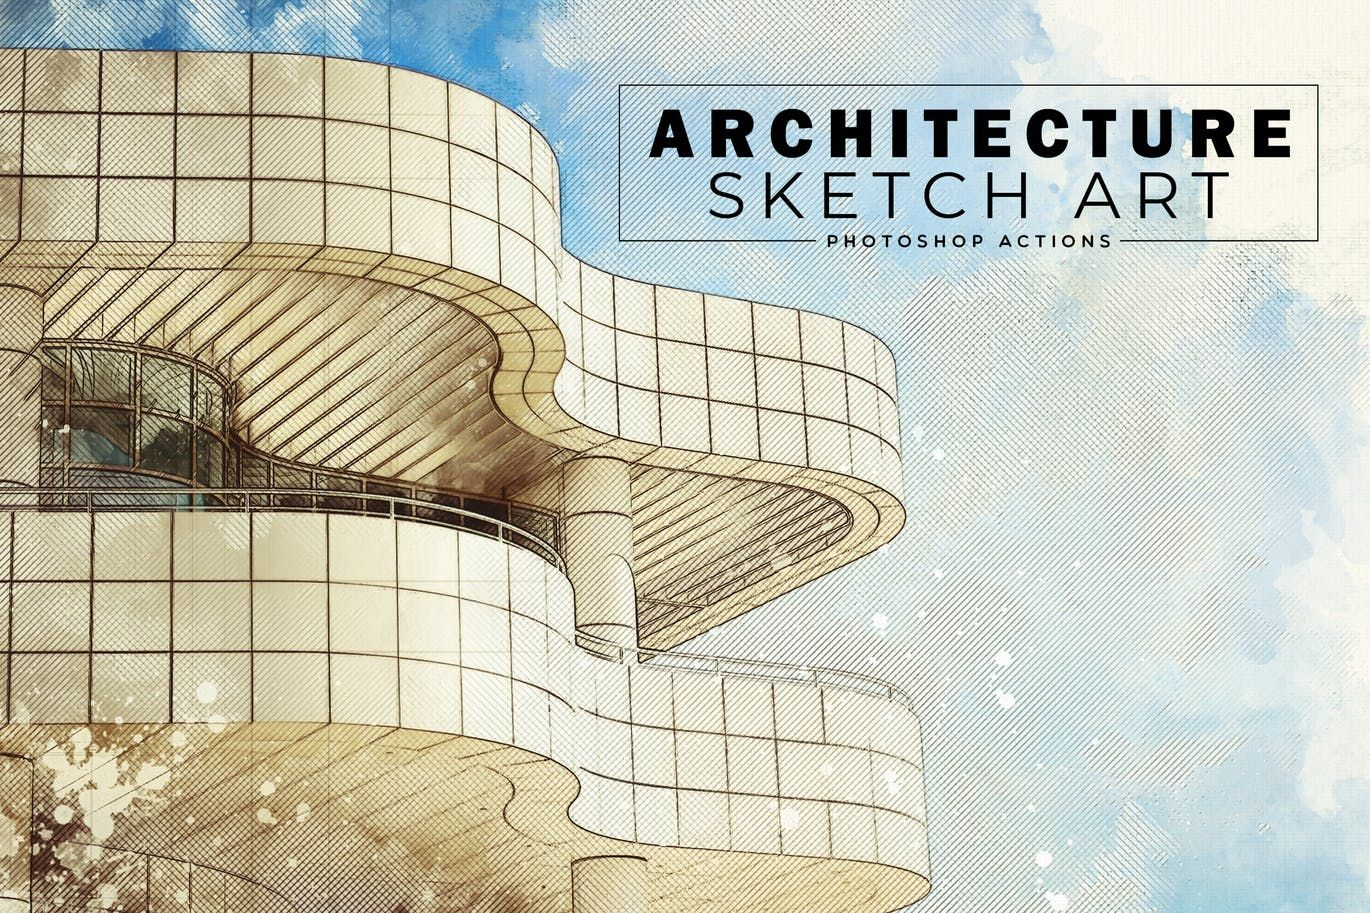 Architecture Sketch Art Photoshop Action Is A Beautiful Sketch Art